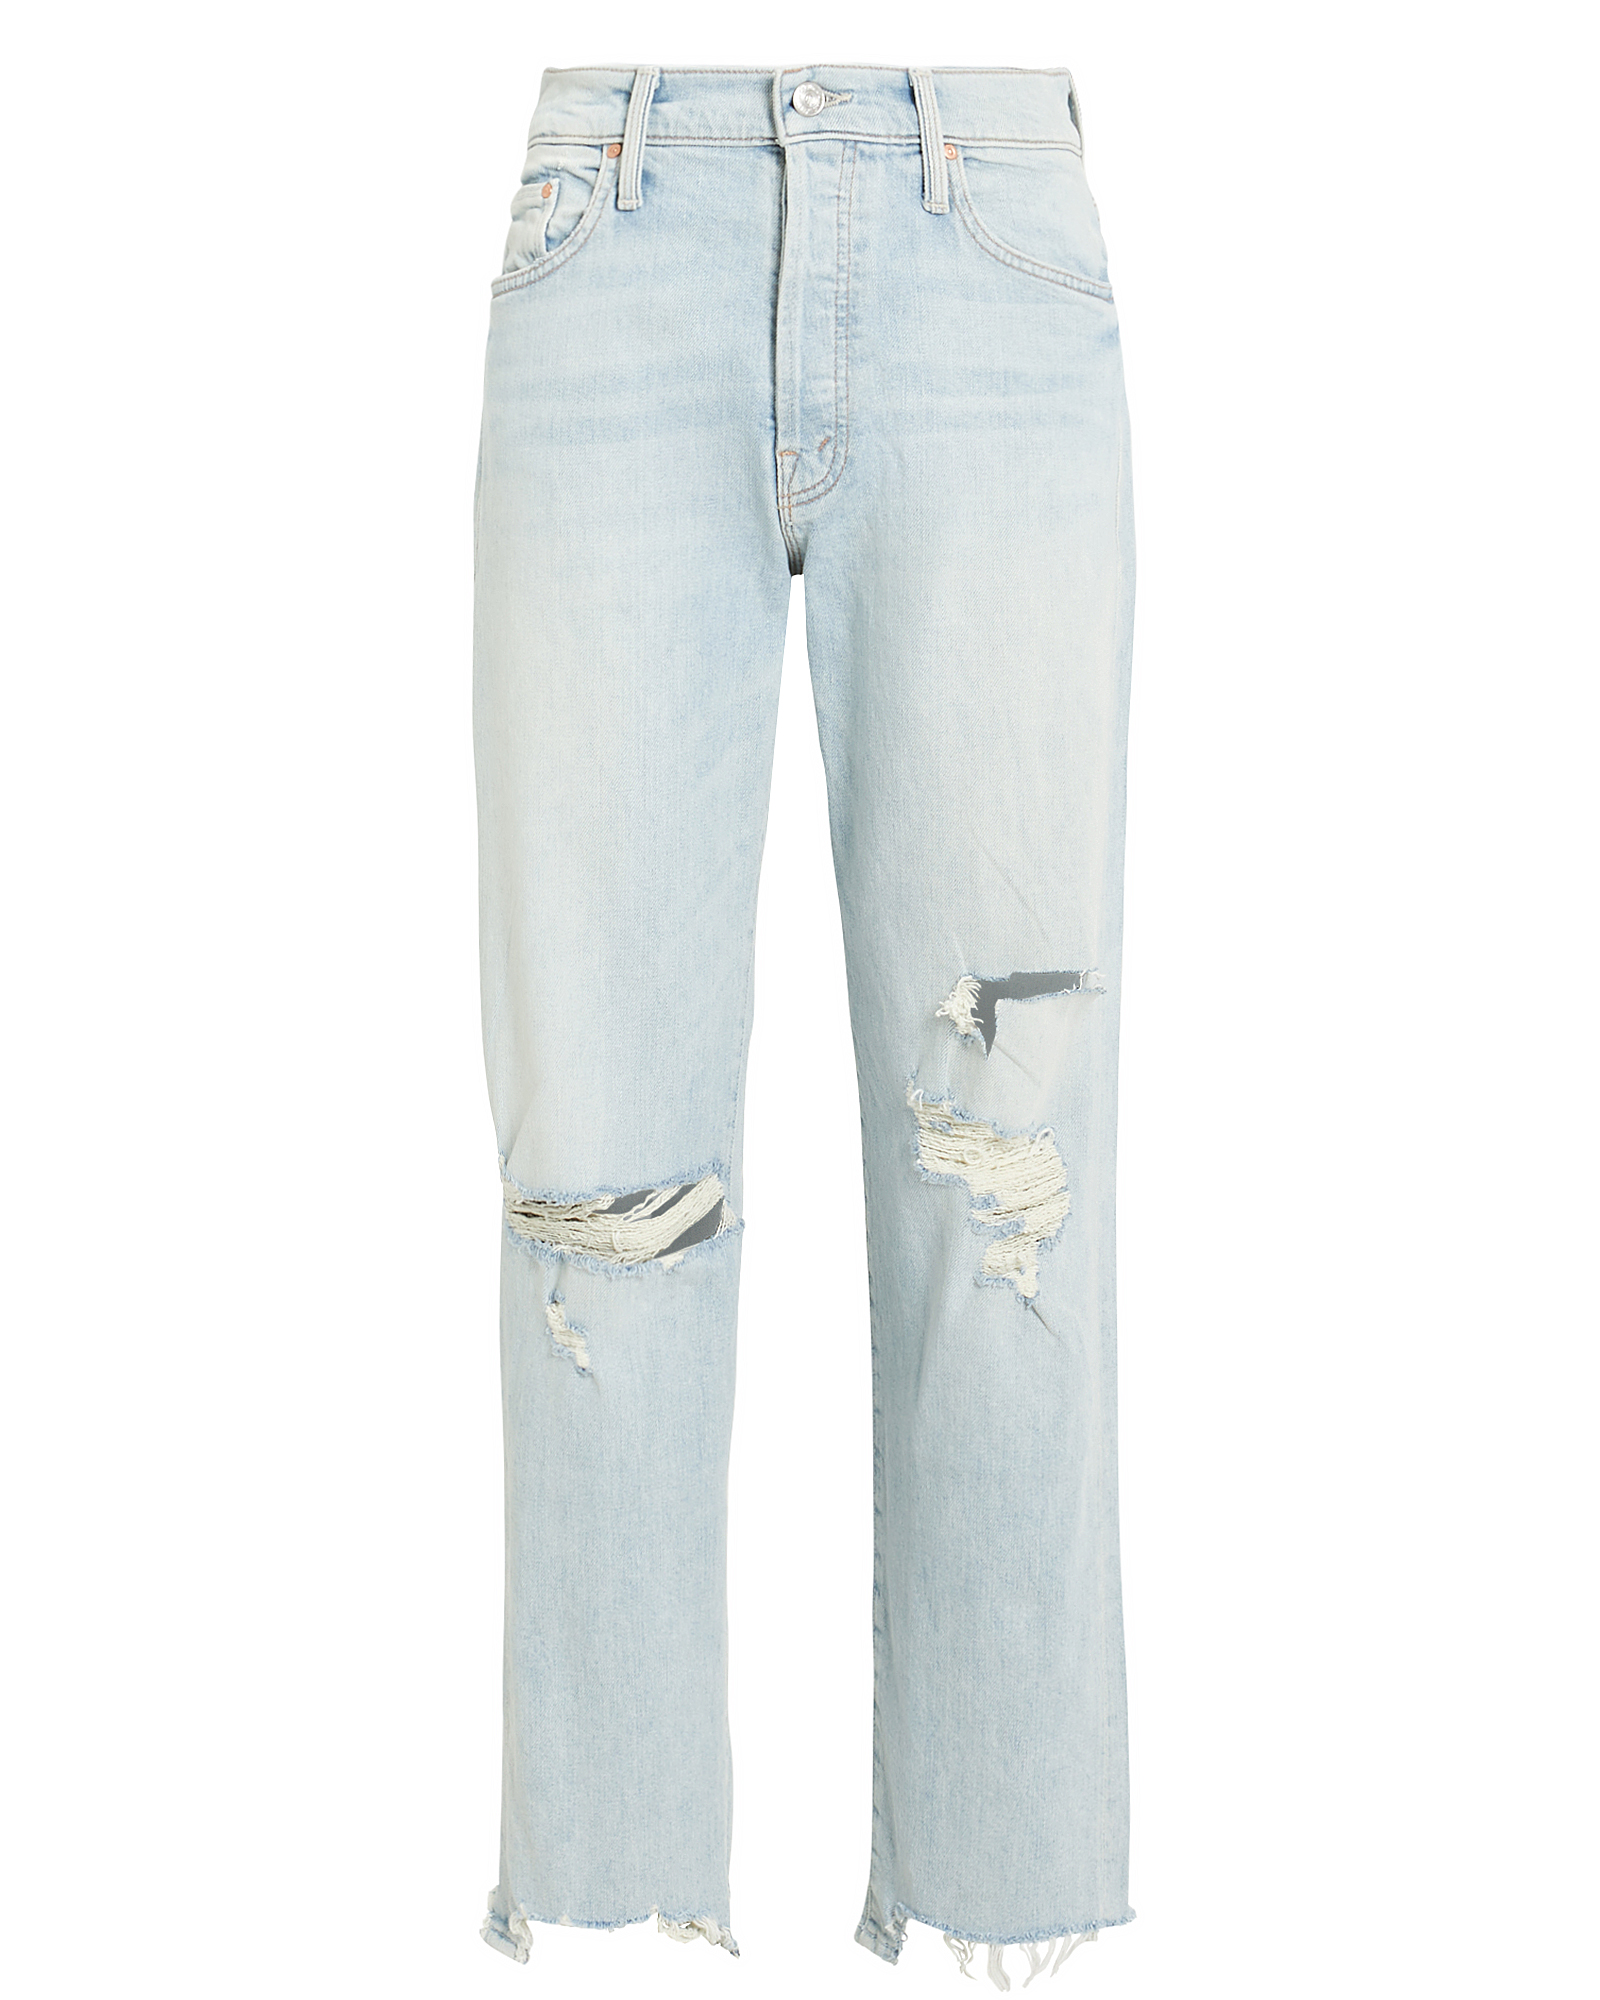 The Huffy Flood Jeans by Mother